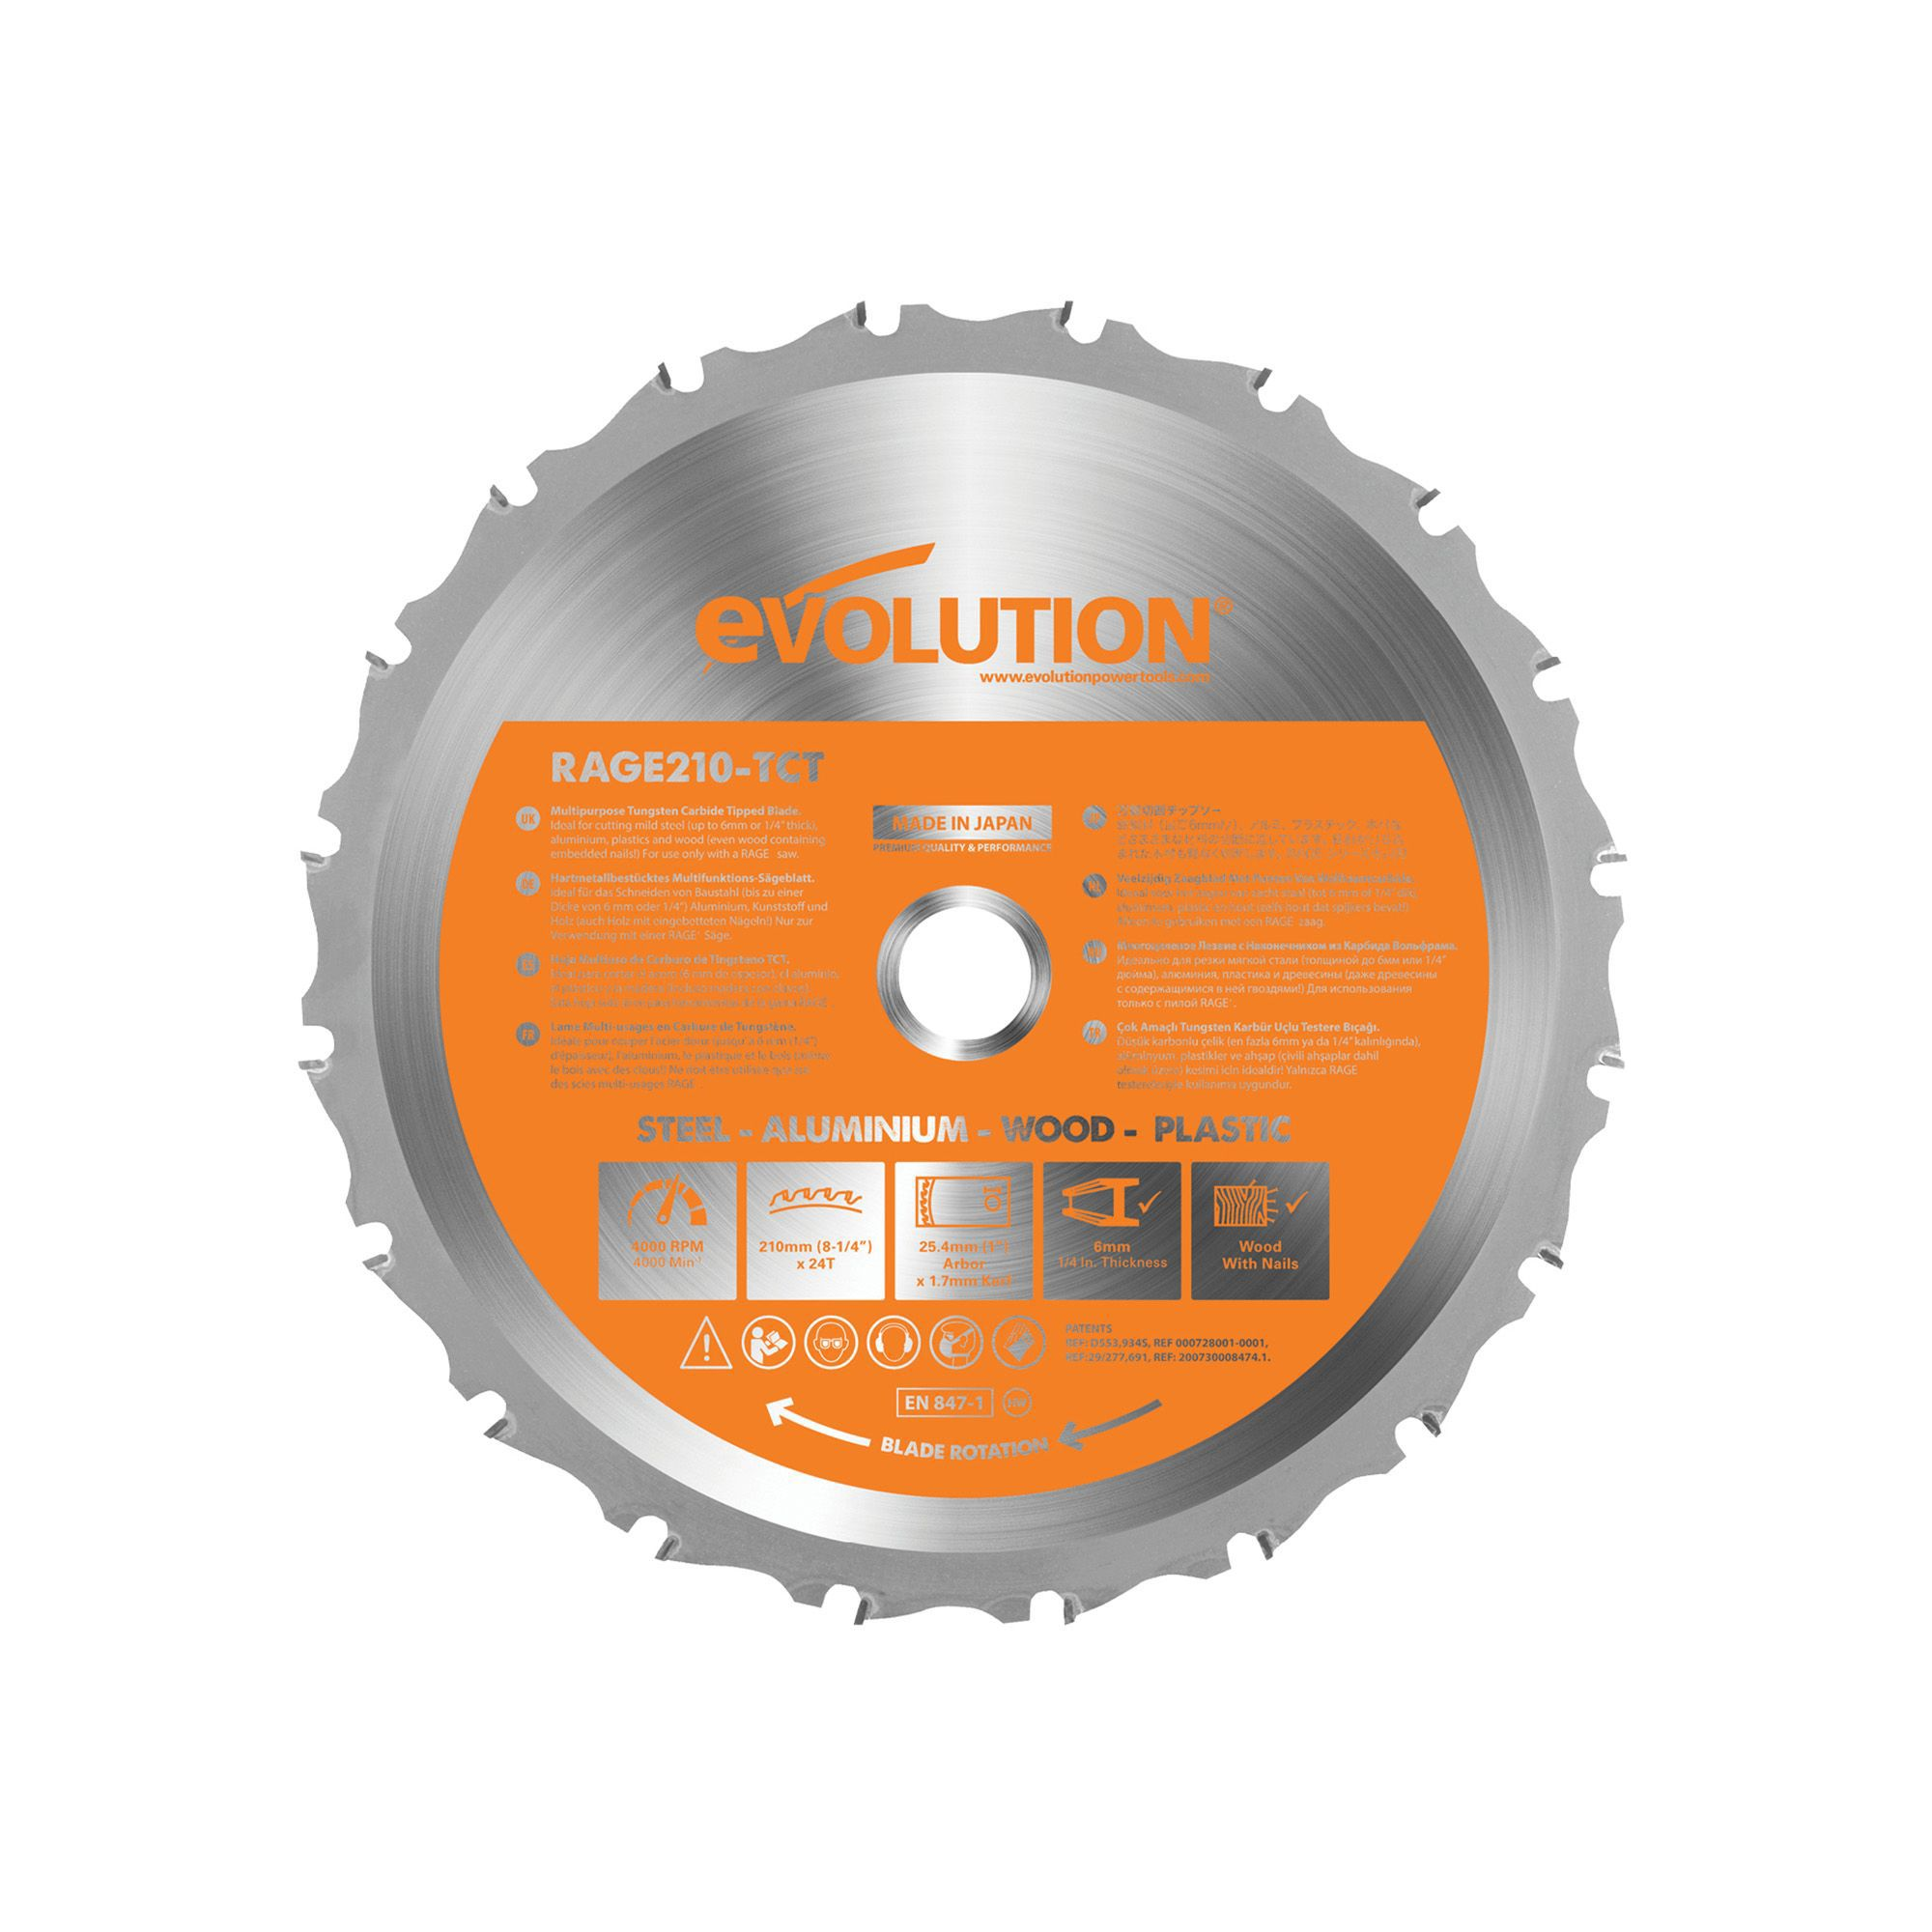 Evolution rage dia185mm circular saw blade departments diy at bq greentooth Image collections